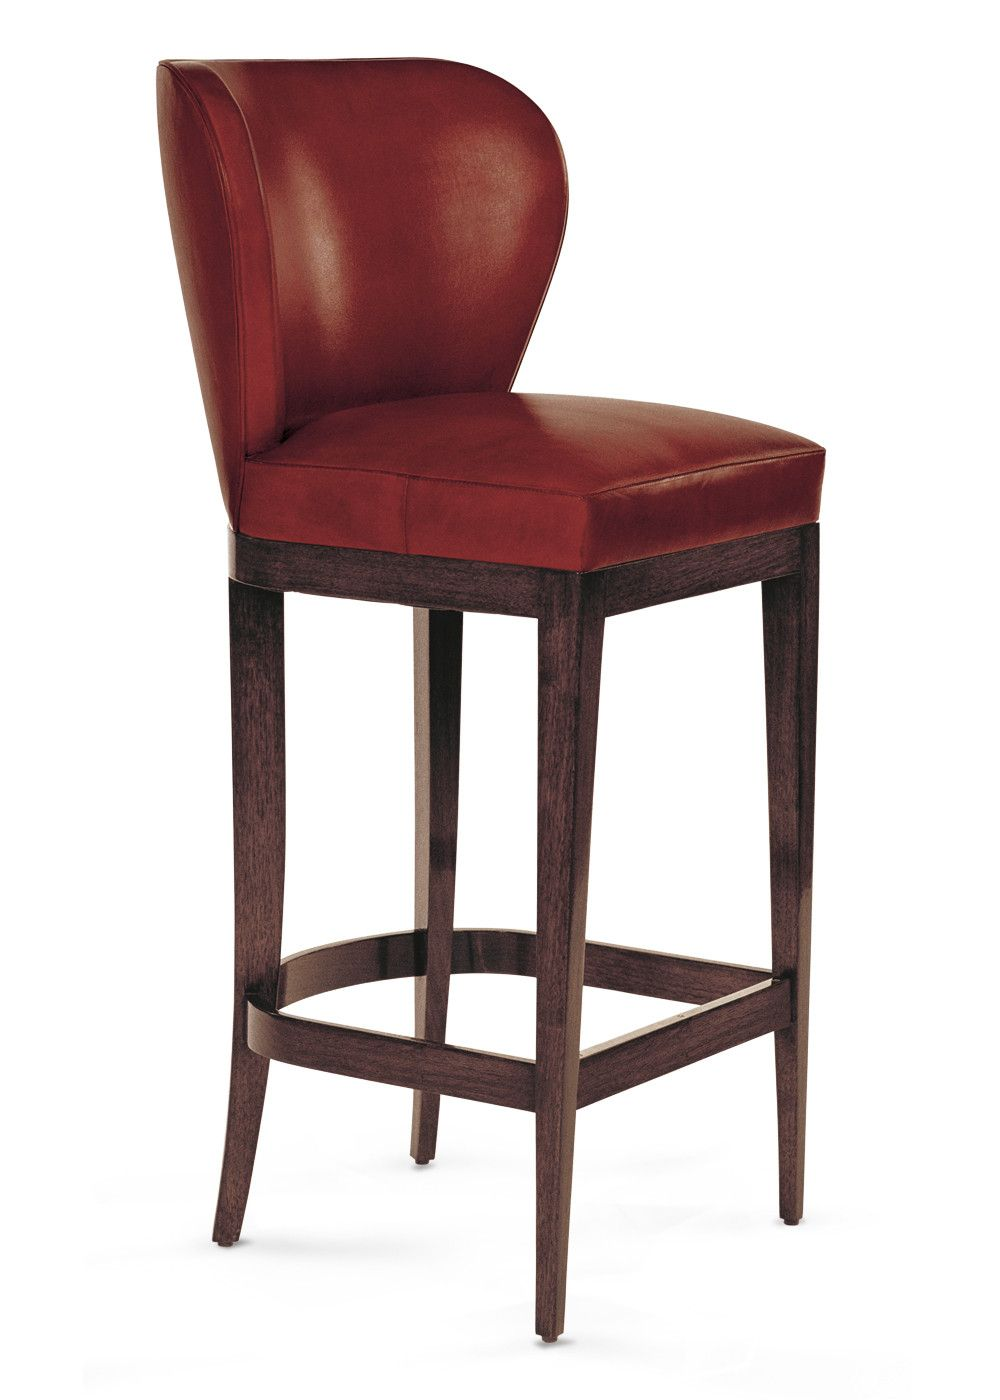 Groovy Augusta Barstool Gd1032 By Gerard Barstools Dessin Gmtry Best Dining Table And Chair Ideas Images Gmtryco